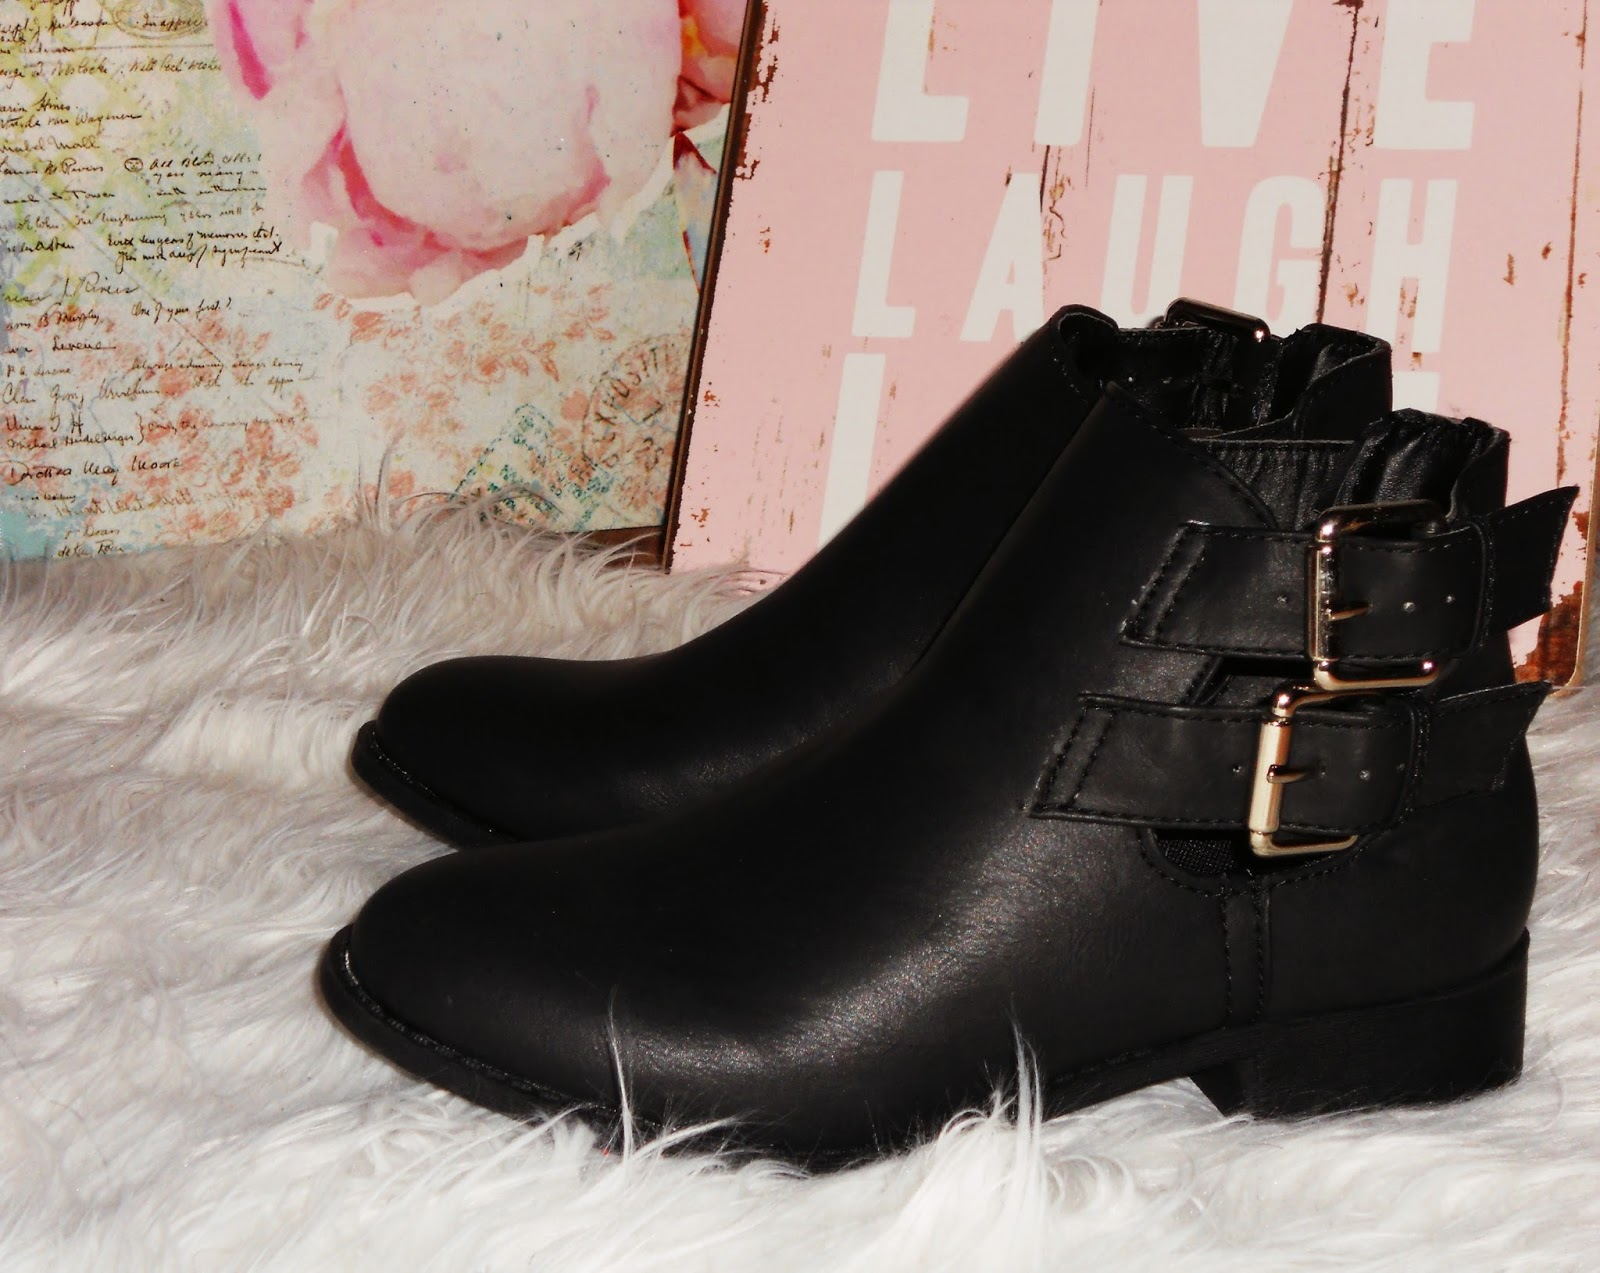 Primark Den Haag haul cut out boots